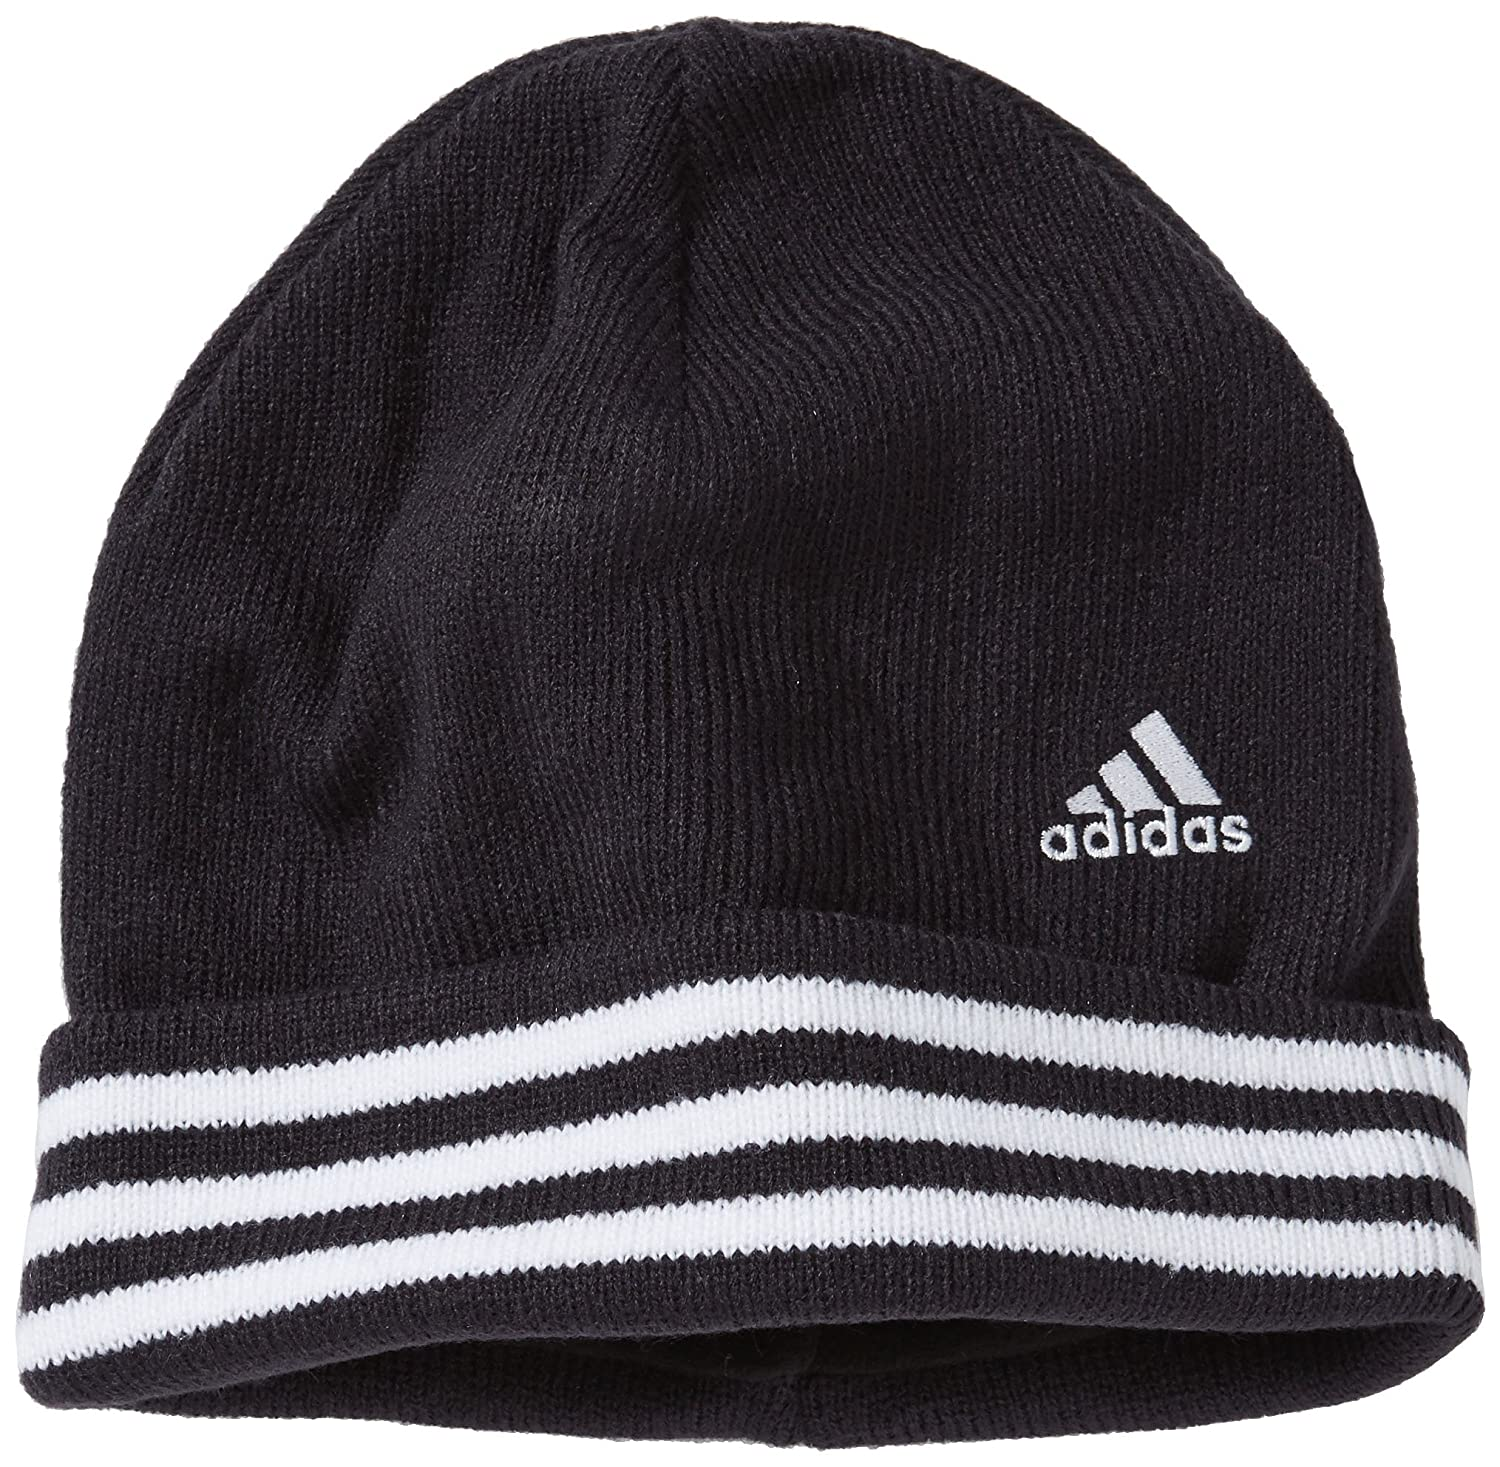 a172cff0 adidas Power 3S Woolie Mens Winter Knitted Beanie Hat One Size ...